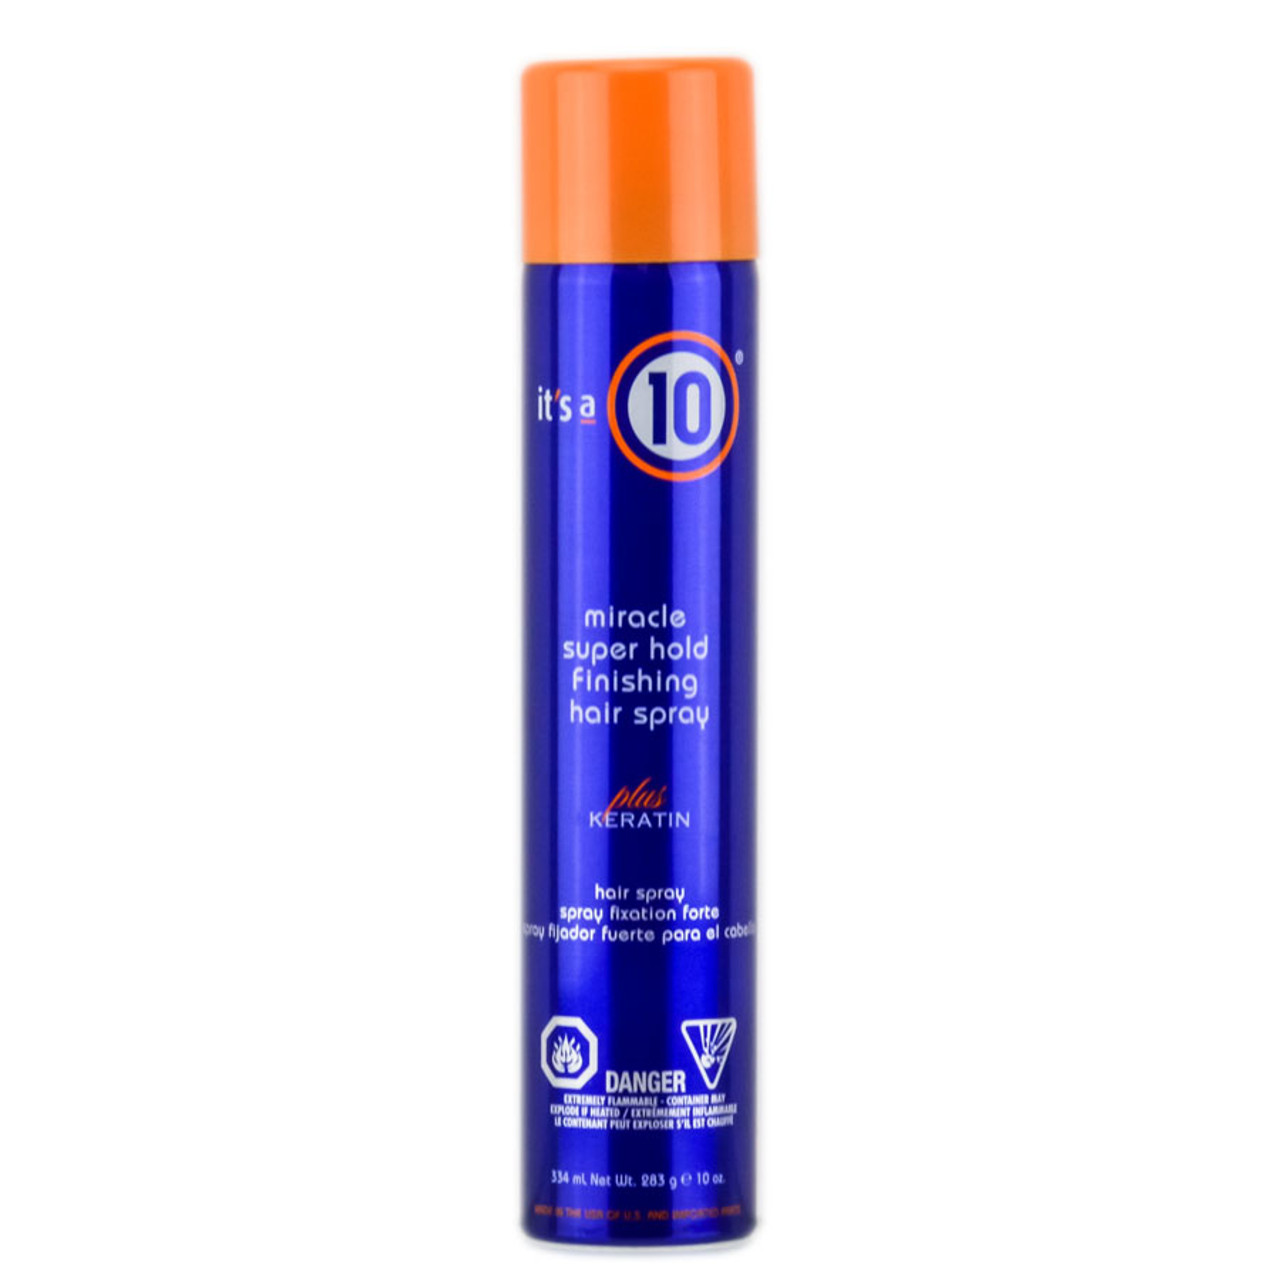 ' 10 Miracle Super Hold Finishing Hair Spray - Keratin